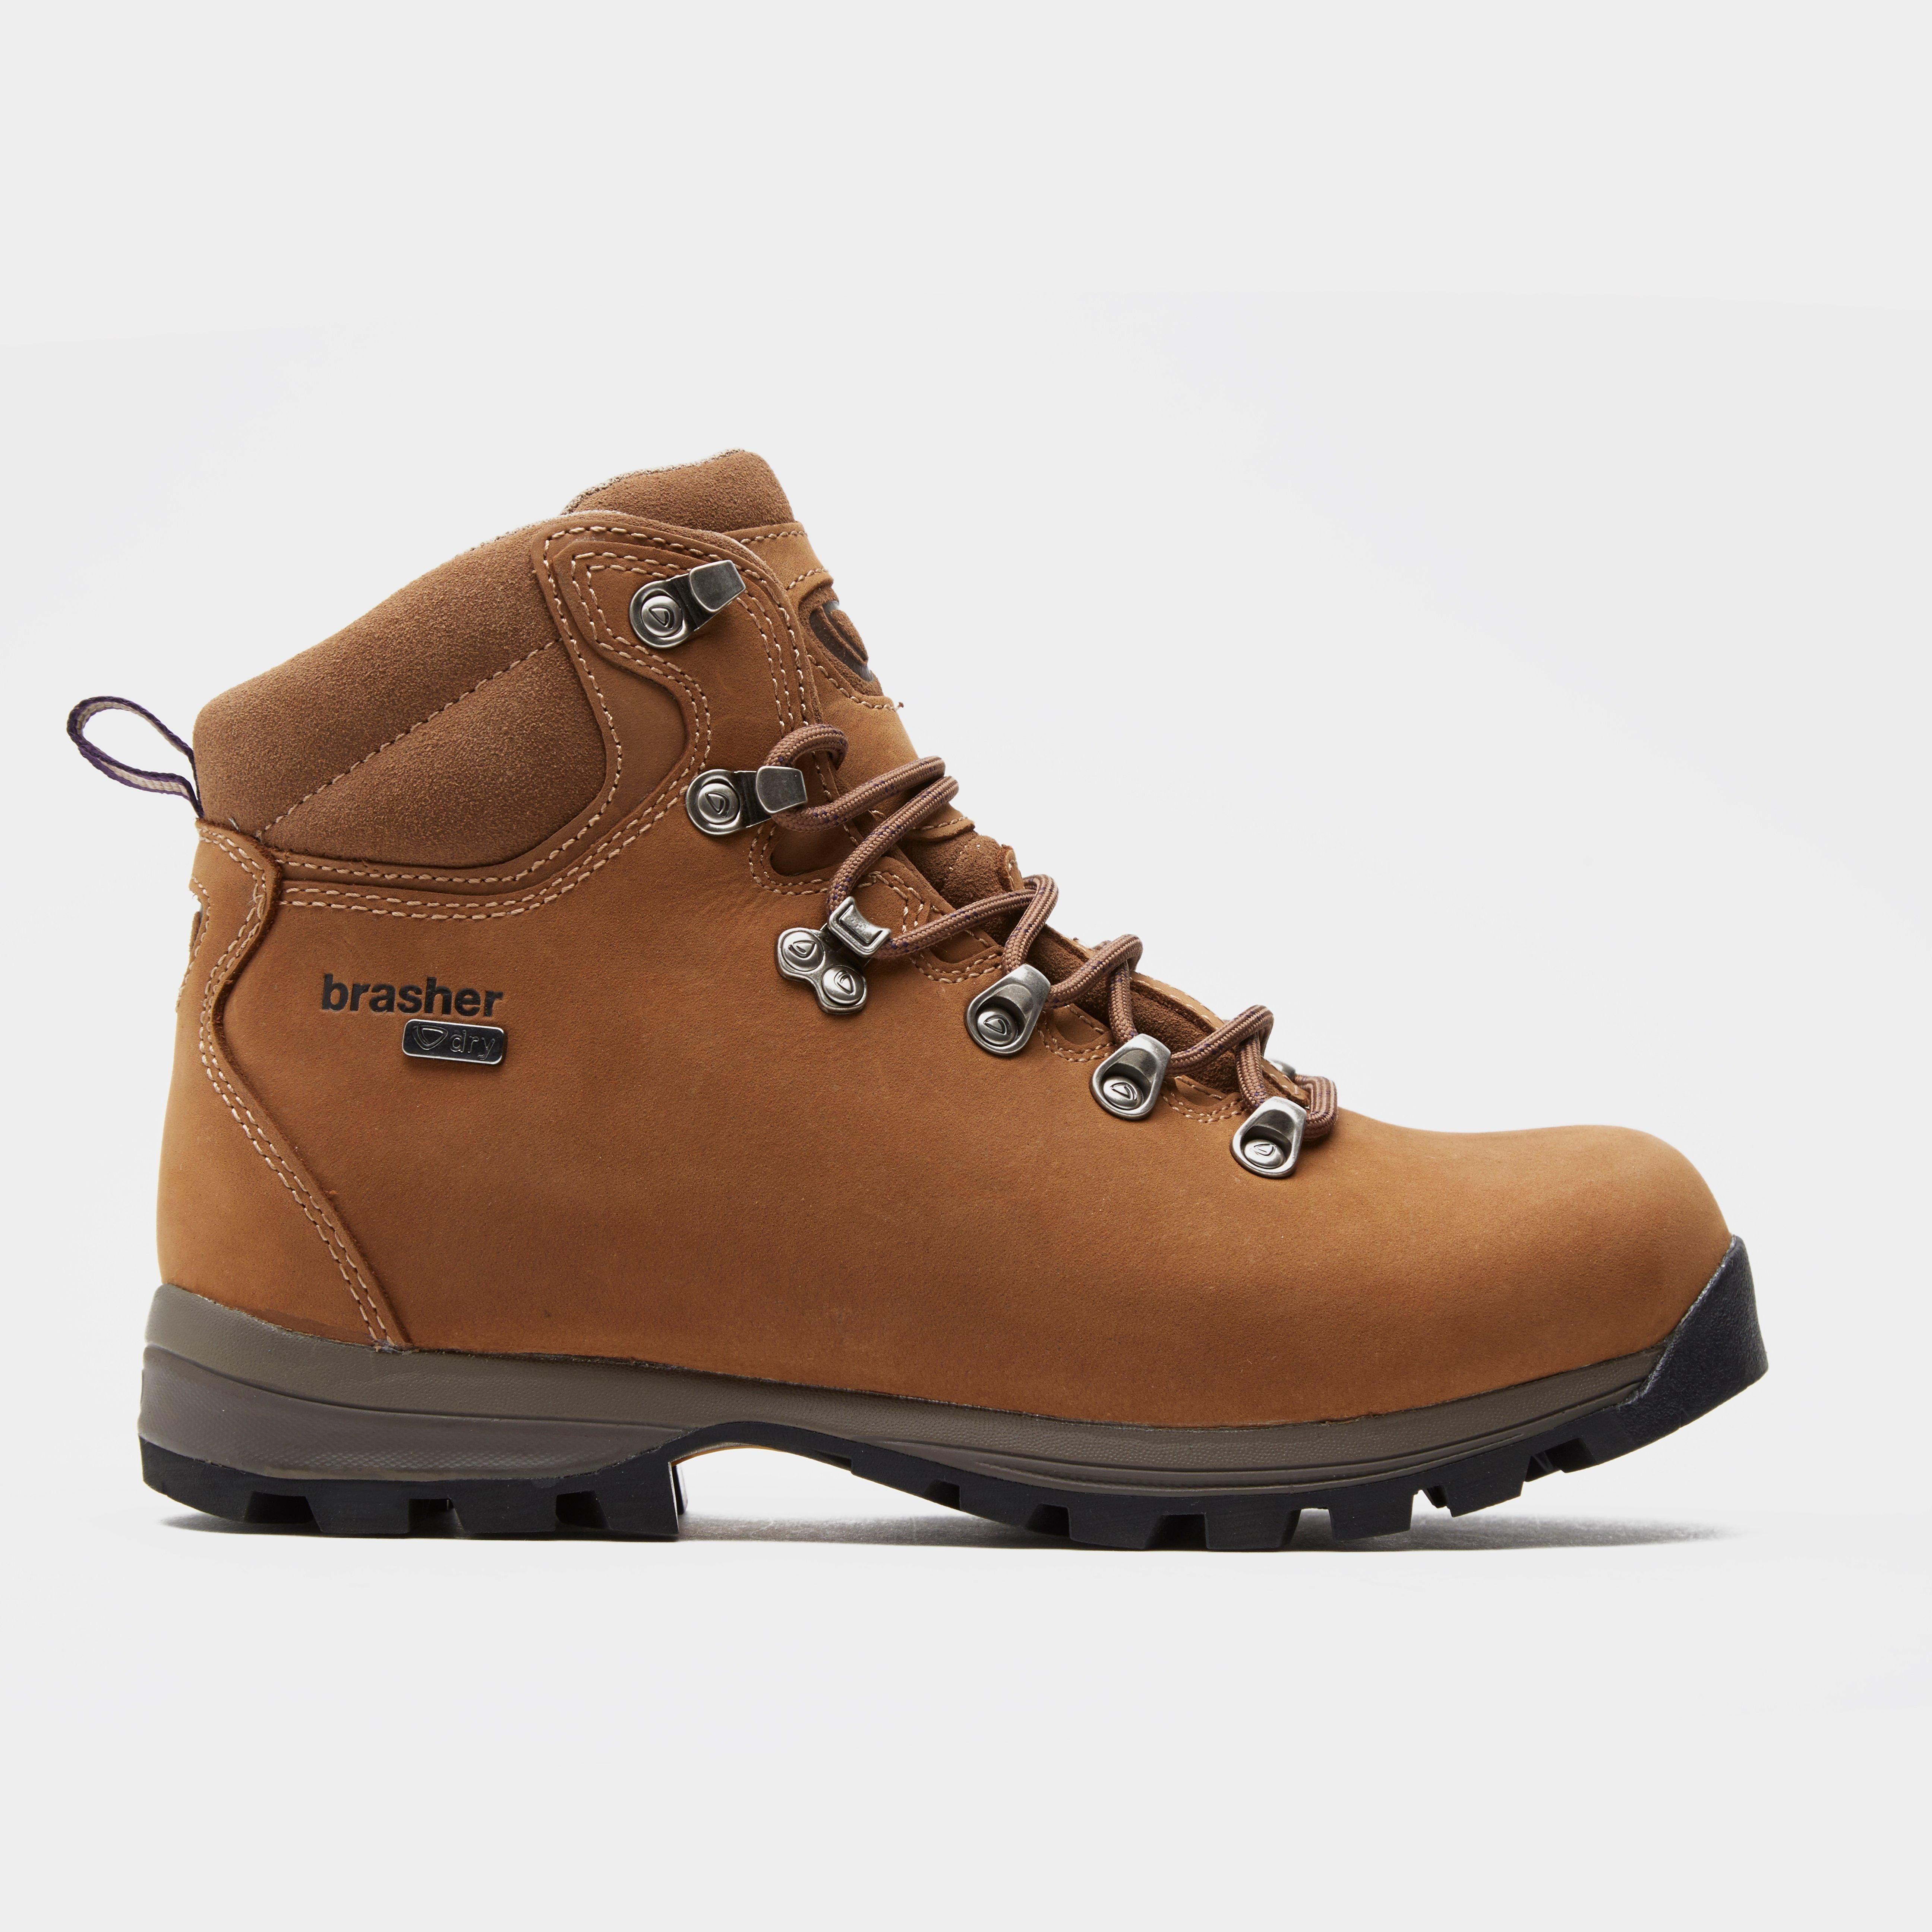 boots totally walking walk in my with and zipper the which a img foam footbed memory ankle nyc booties have hidden fell city leopard comfortable them so stroller find comforter love of citystroller for i streets these wedge heel